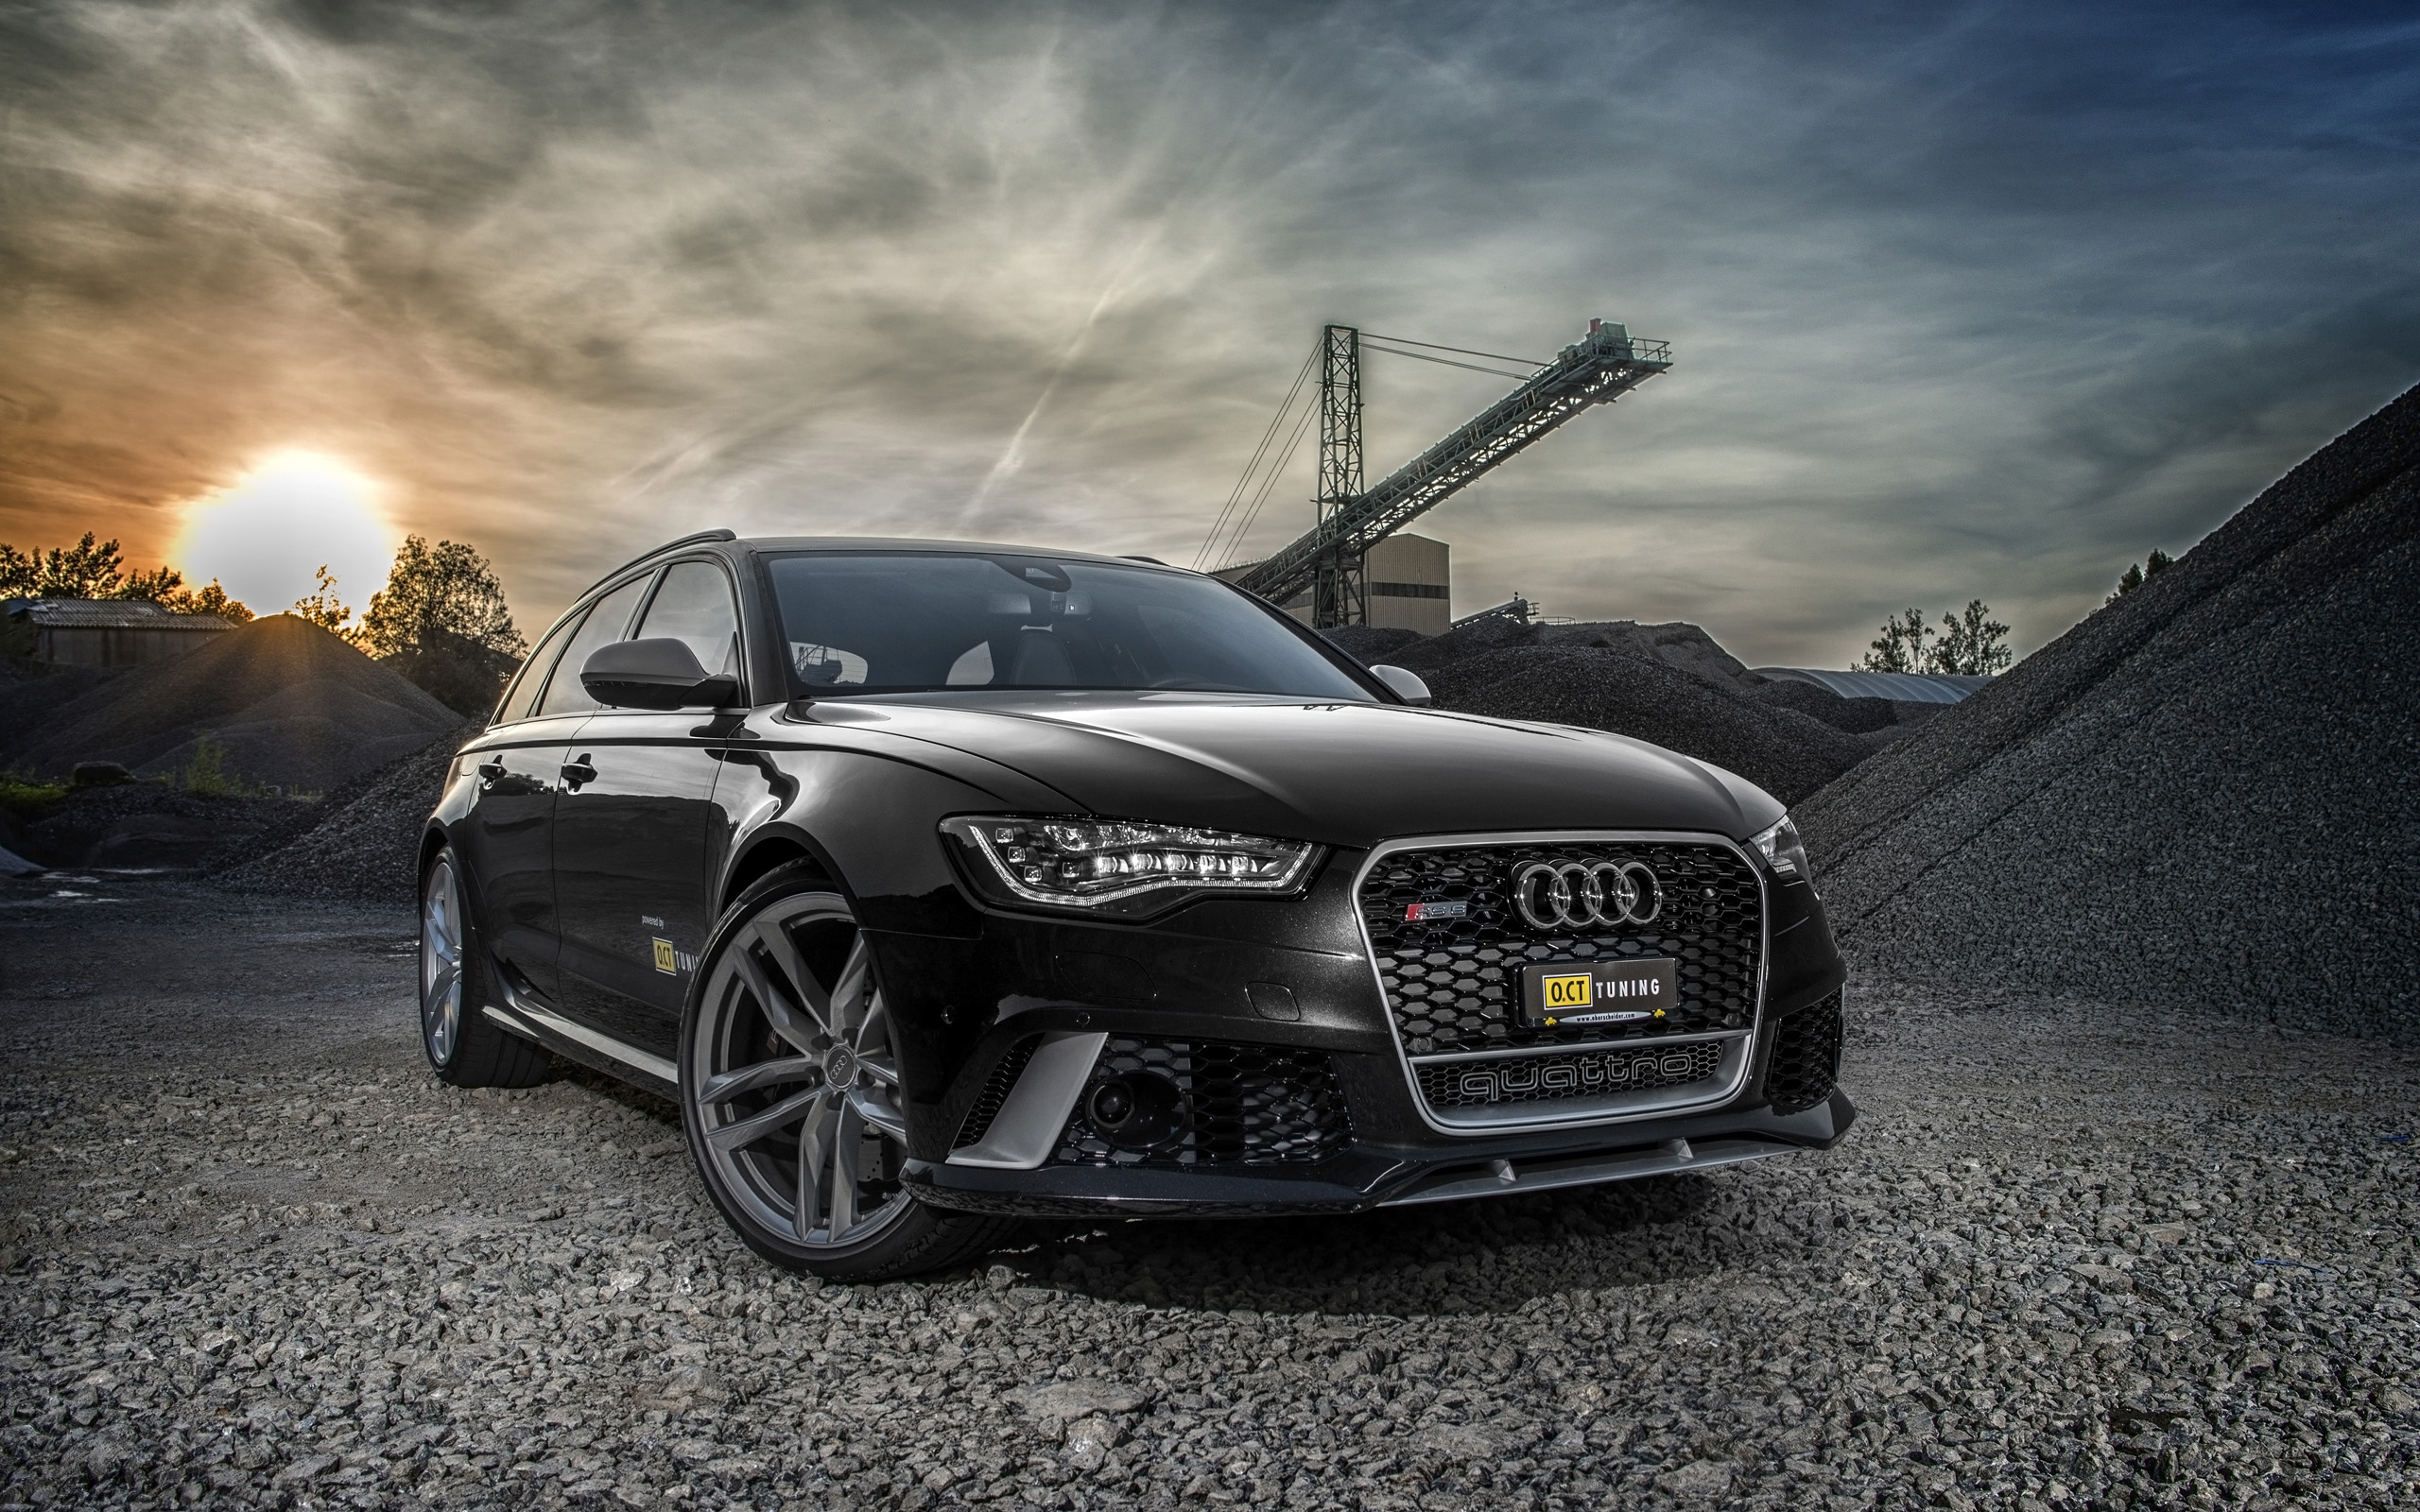 CT Tuning Audi RS6 Wallpaper HD Car Wallpapers 2560x1600